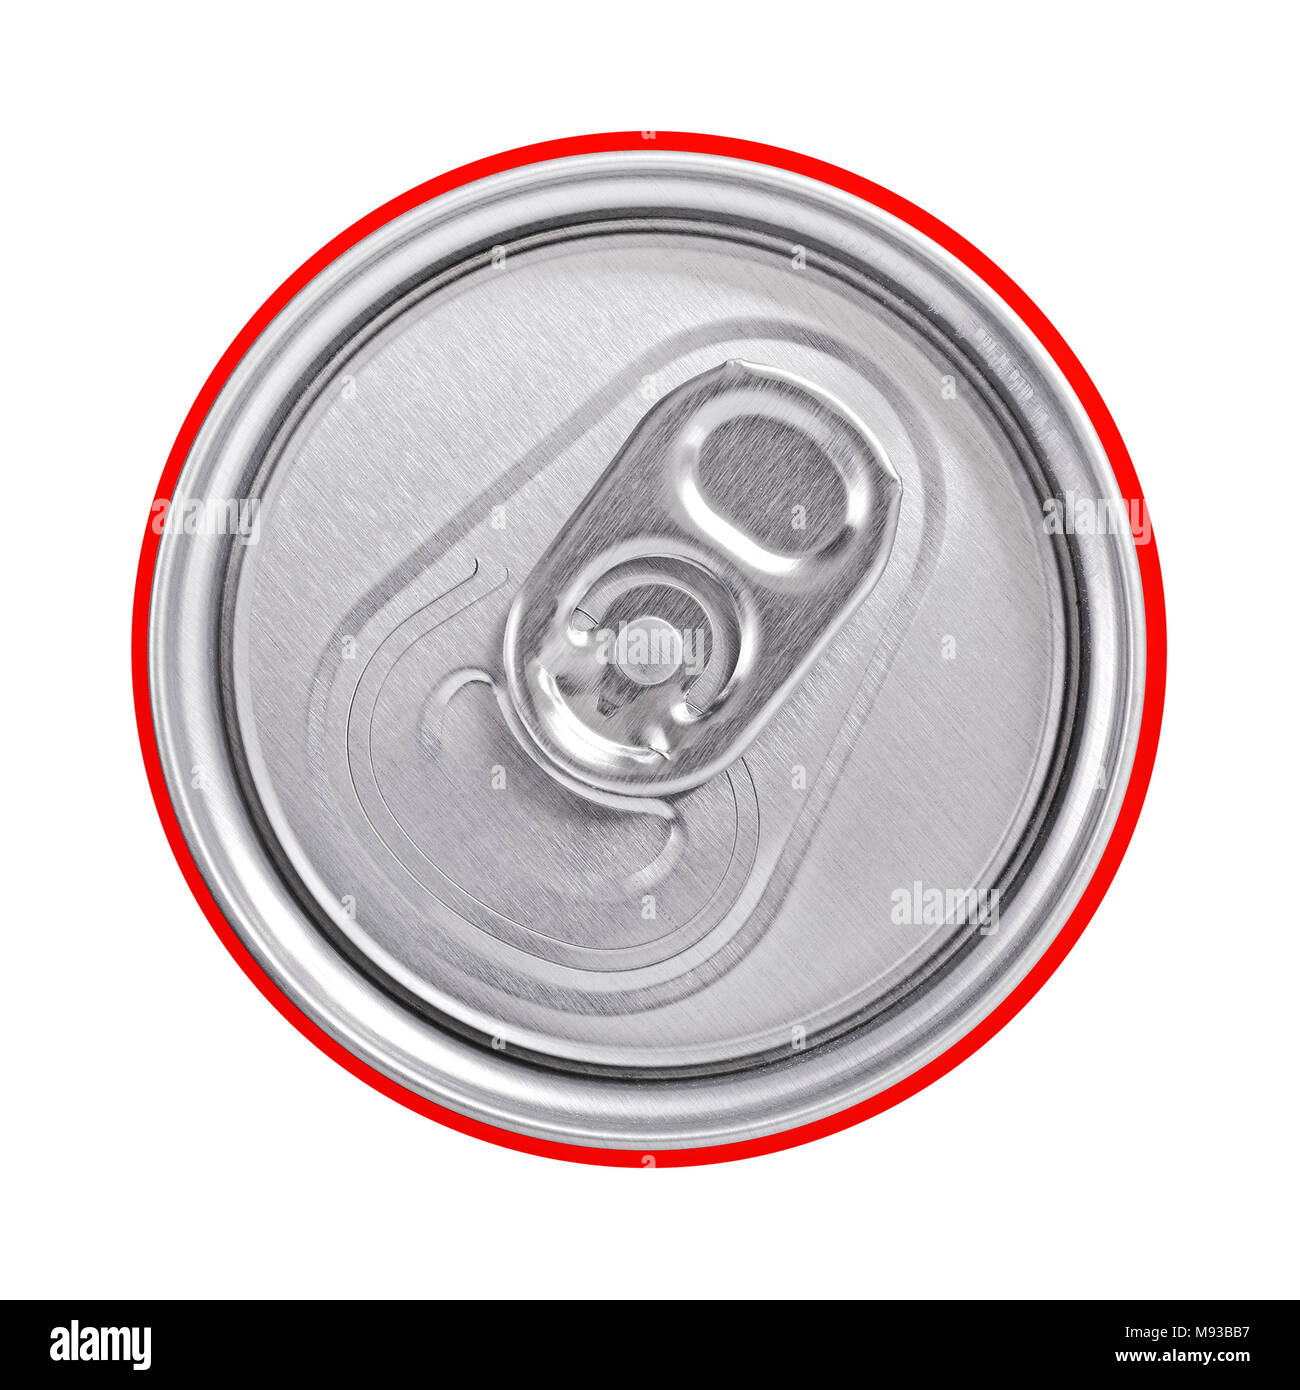 Top of a Drinks Can With a Ring Pull, Close Up. - Stock Image